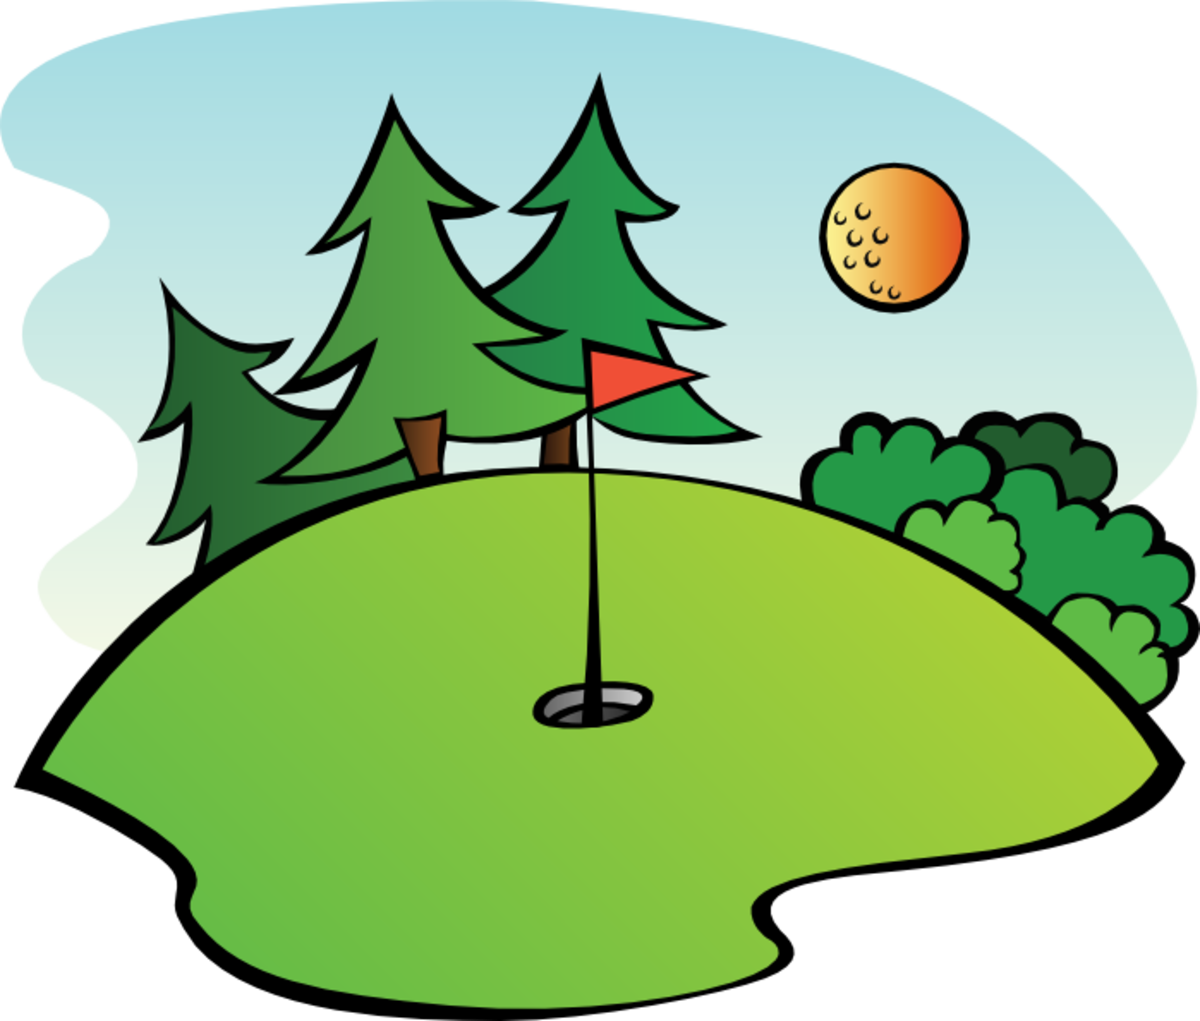 average-amateurs-golf-club-distances-in-meters-and-yards